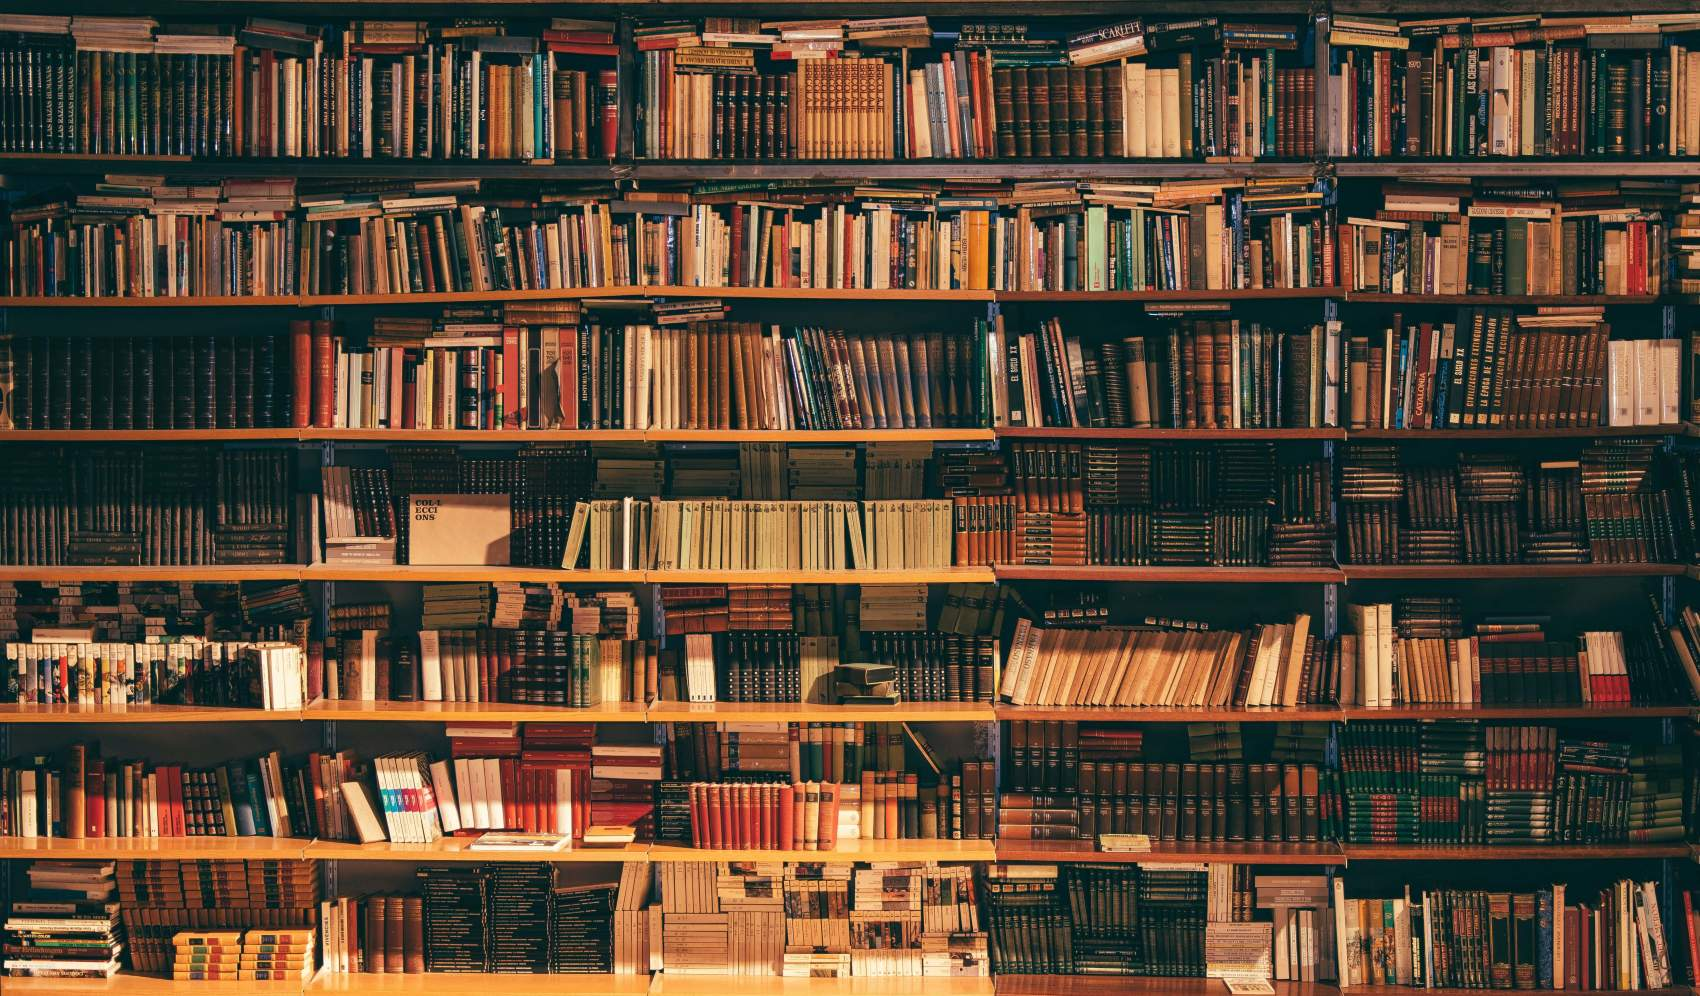 books line the shelves of a cluttered library